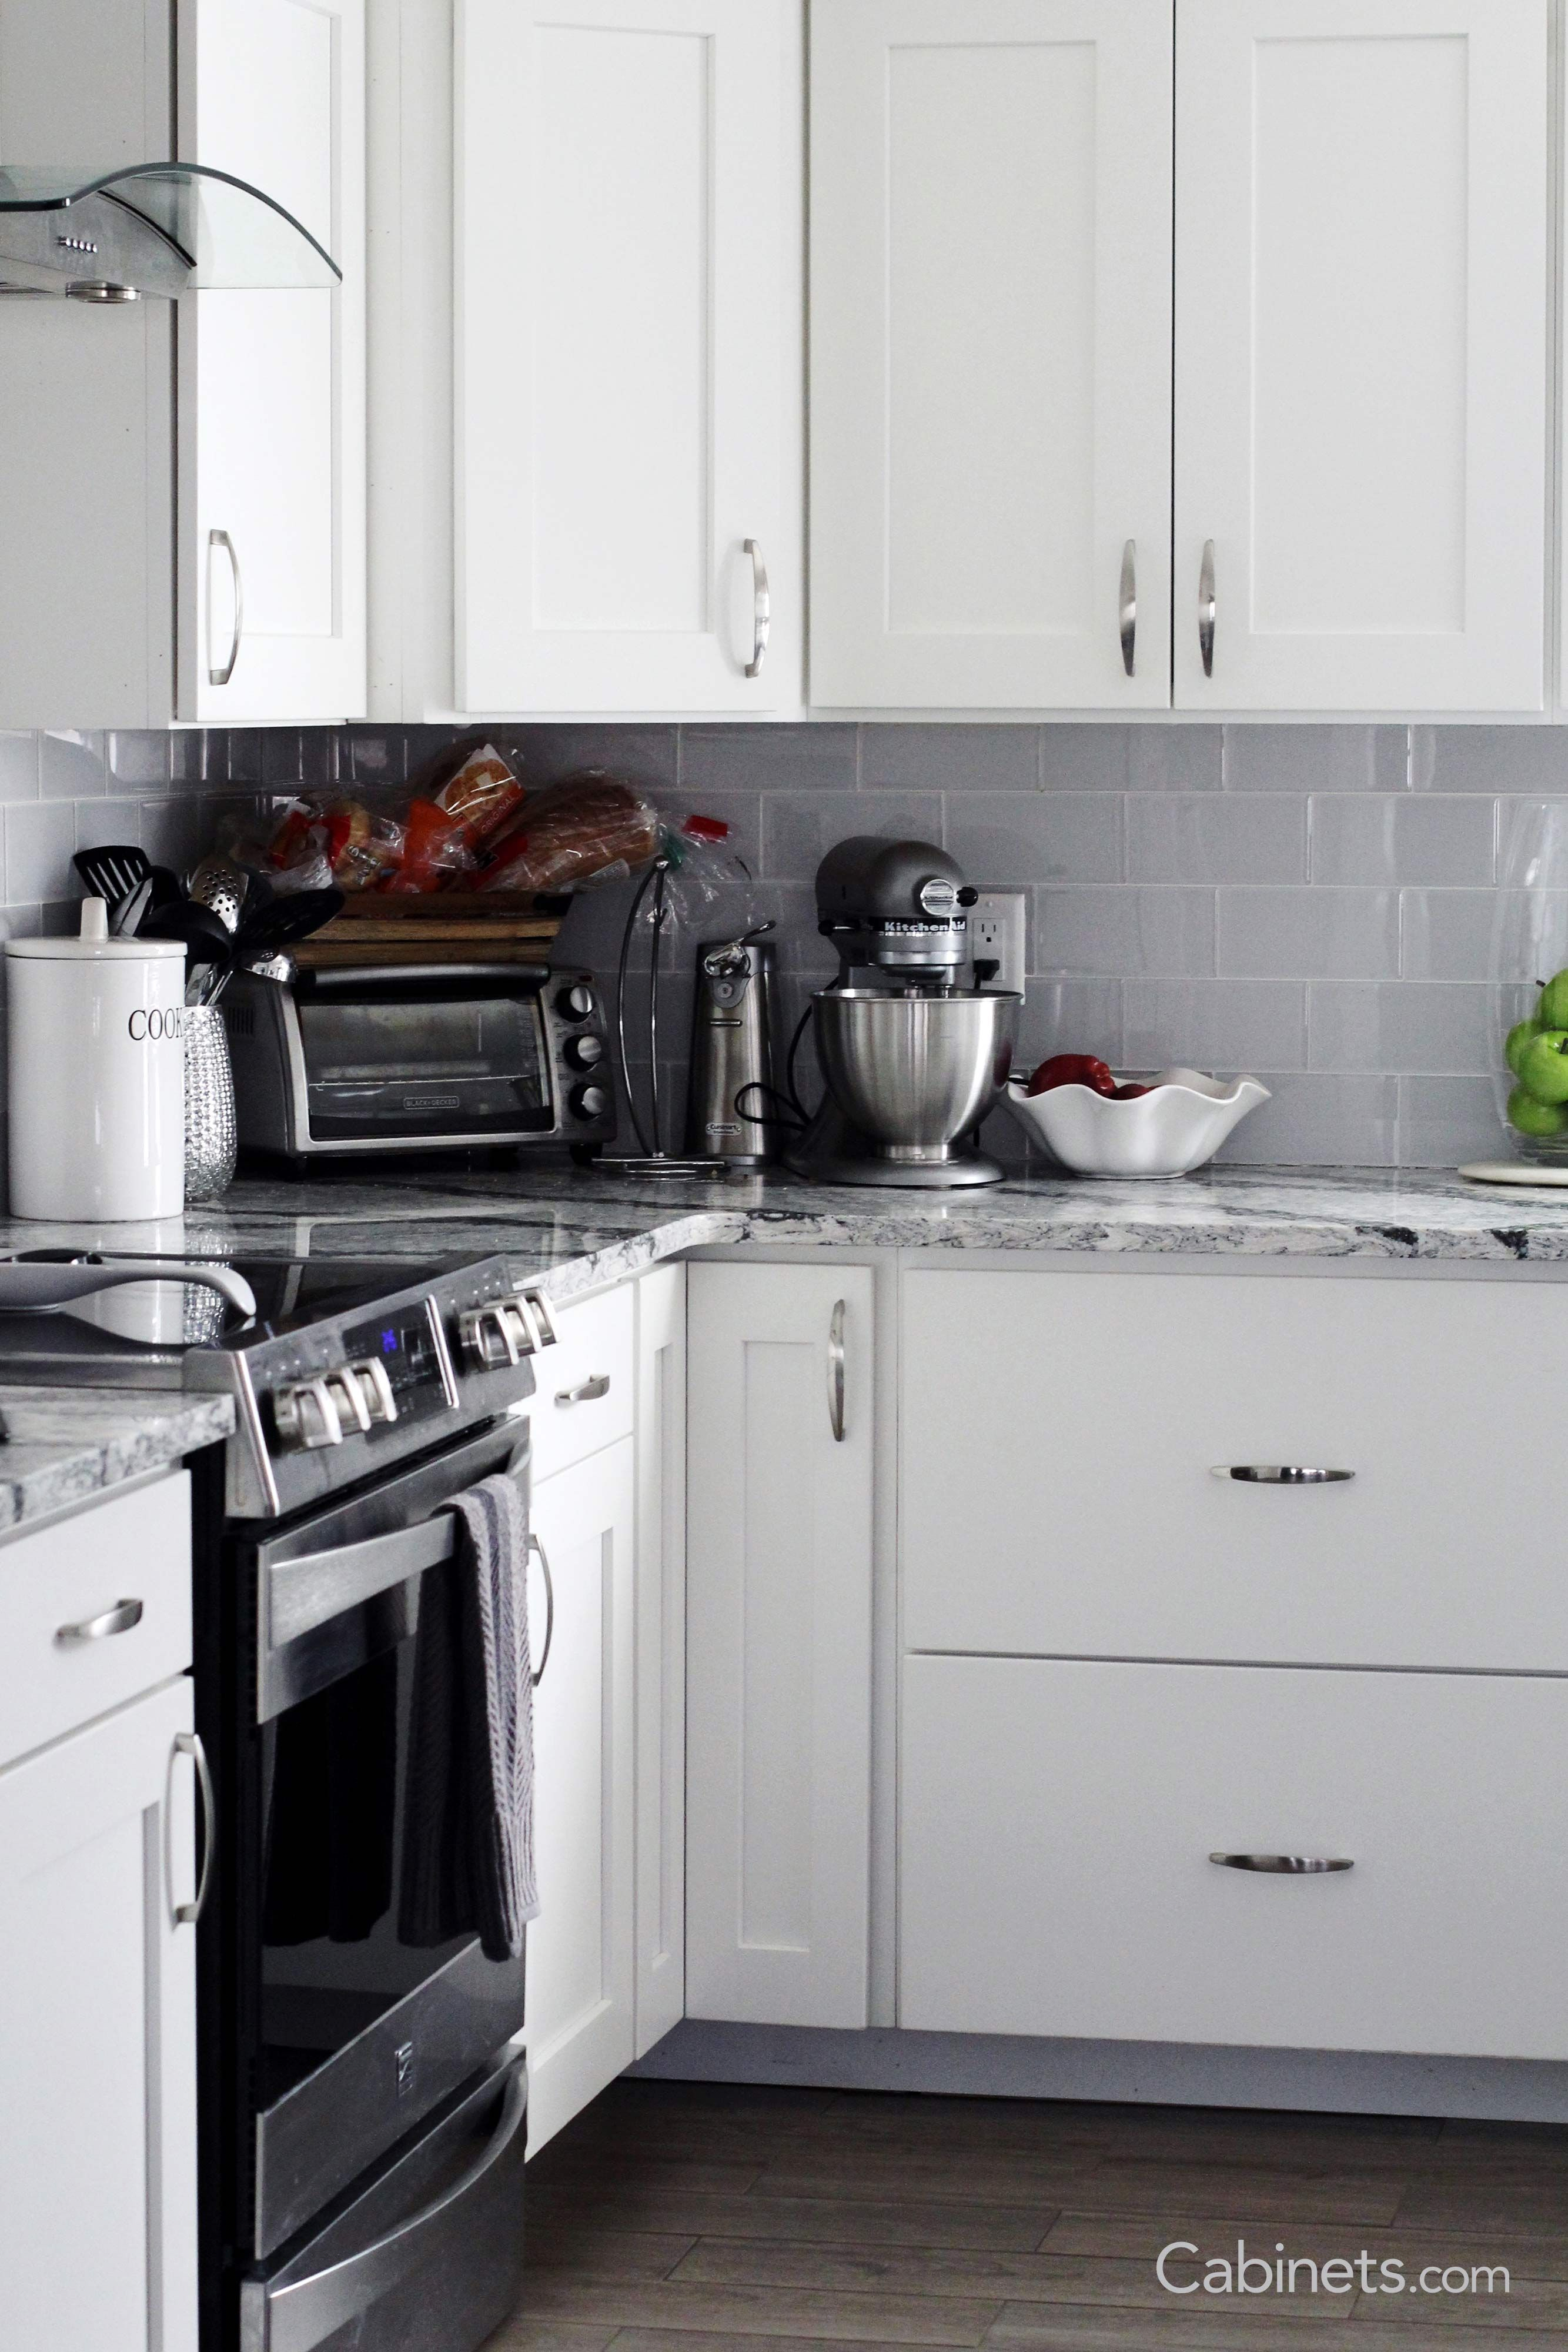 Whitekitchen Cabinets Are A Timeless Choice They Can Be Paired With Any Design Style And Loo White Kitchen Cabinets Kitchen Cabinets Decor Kitchen Cabinets